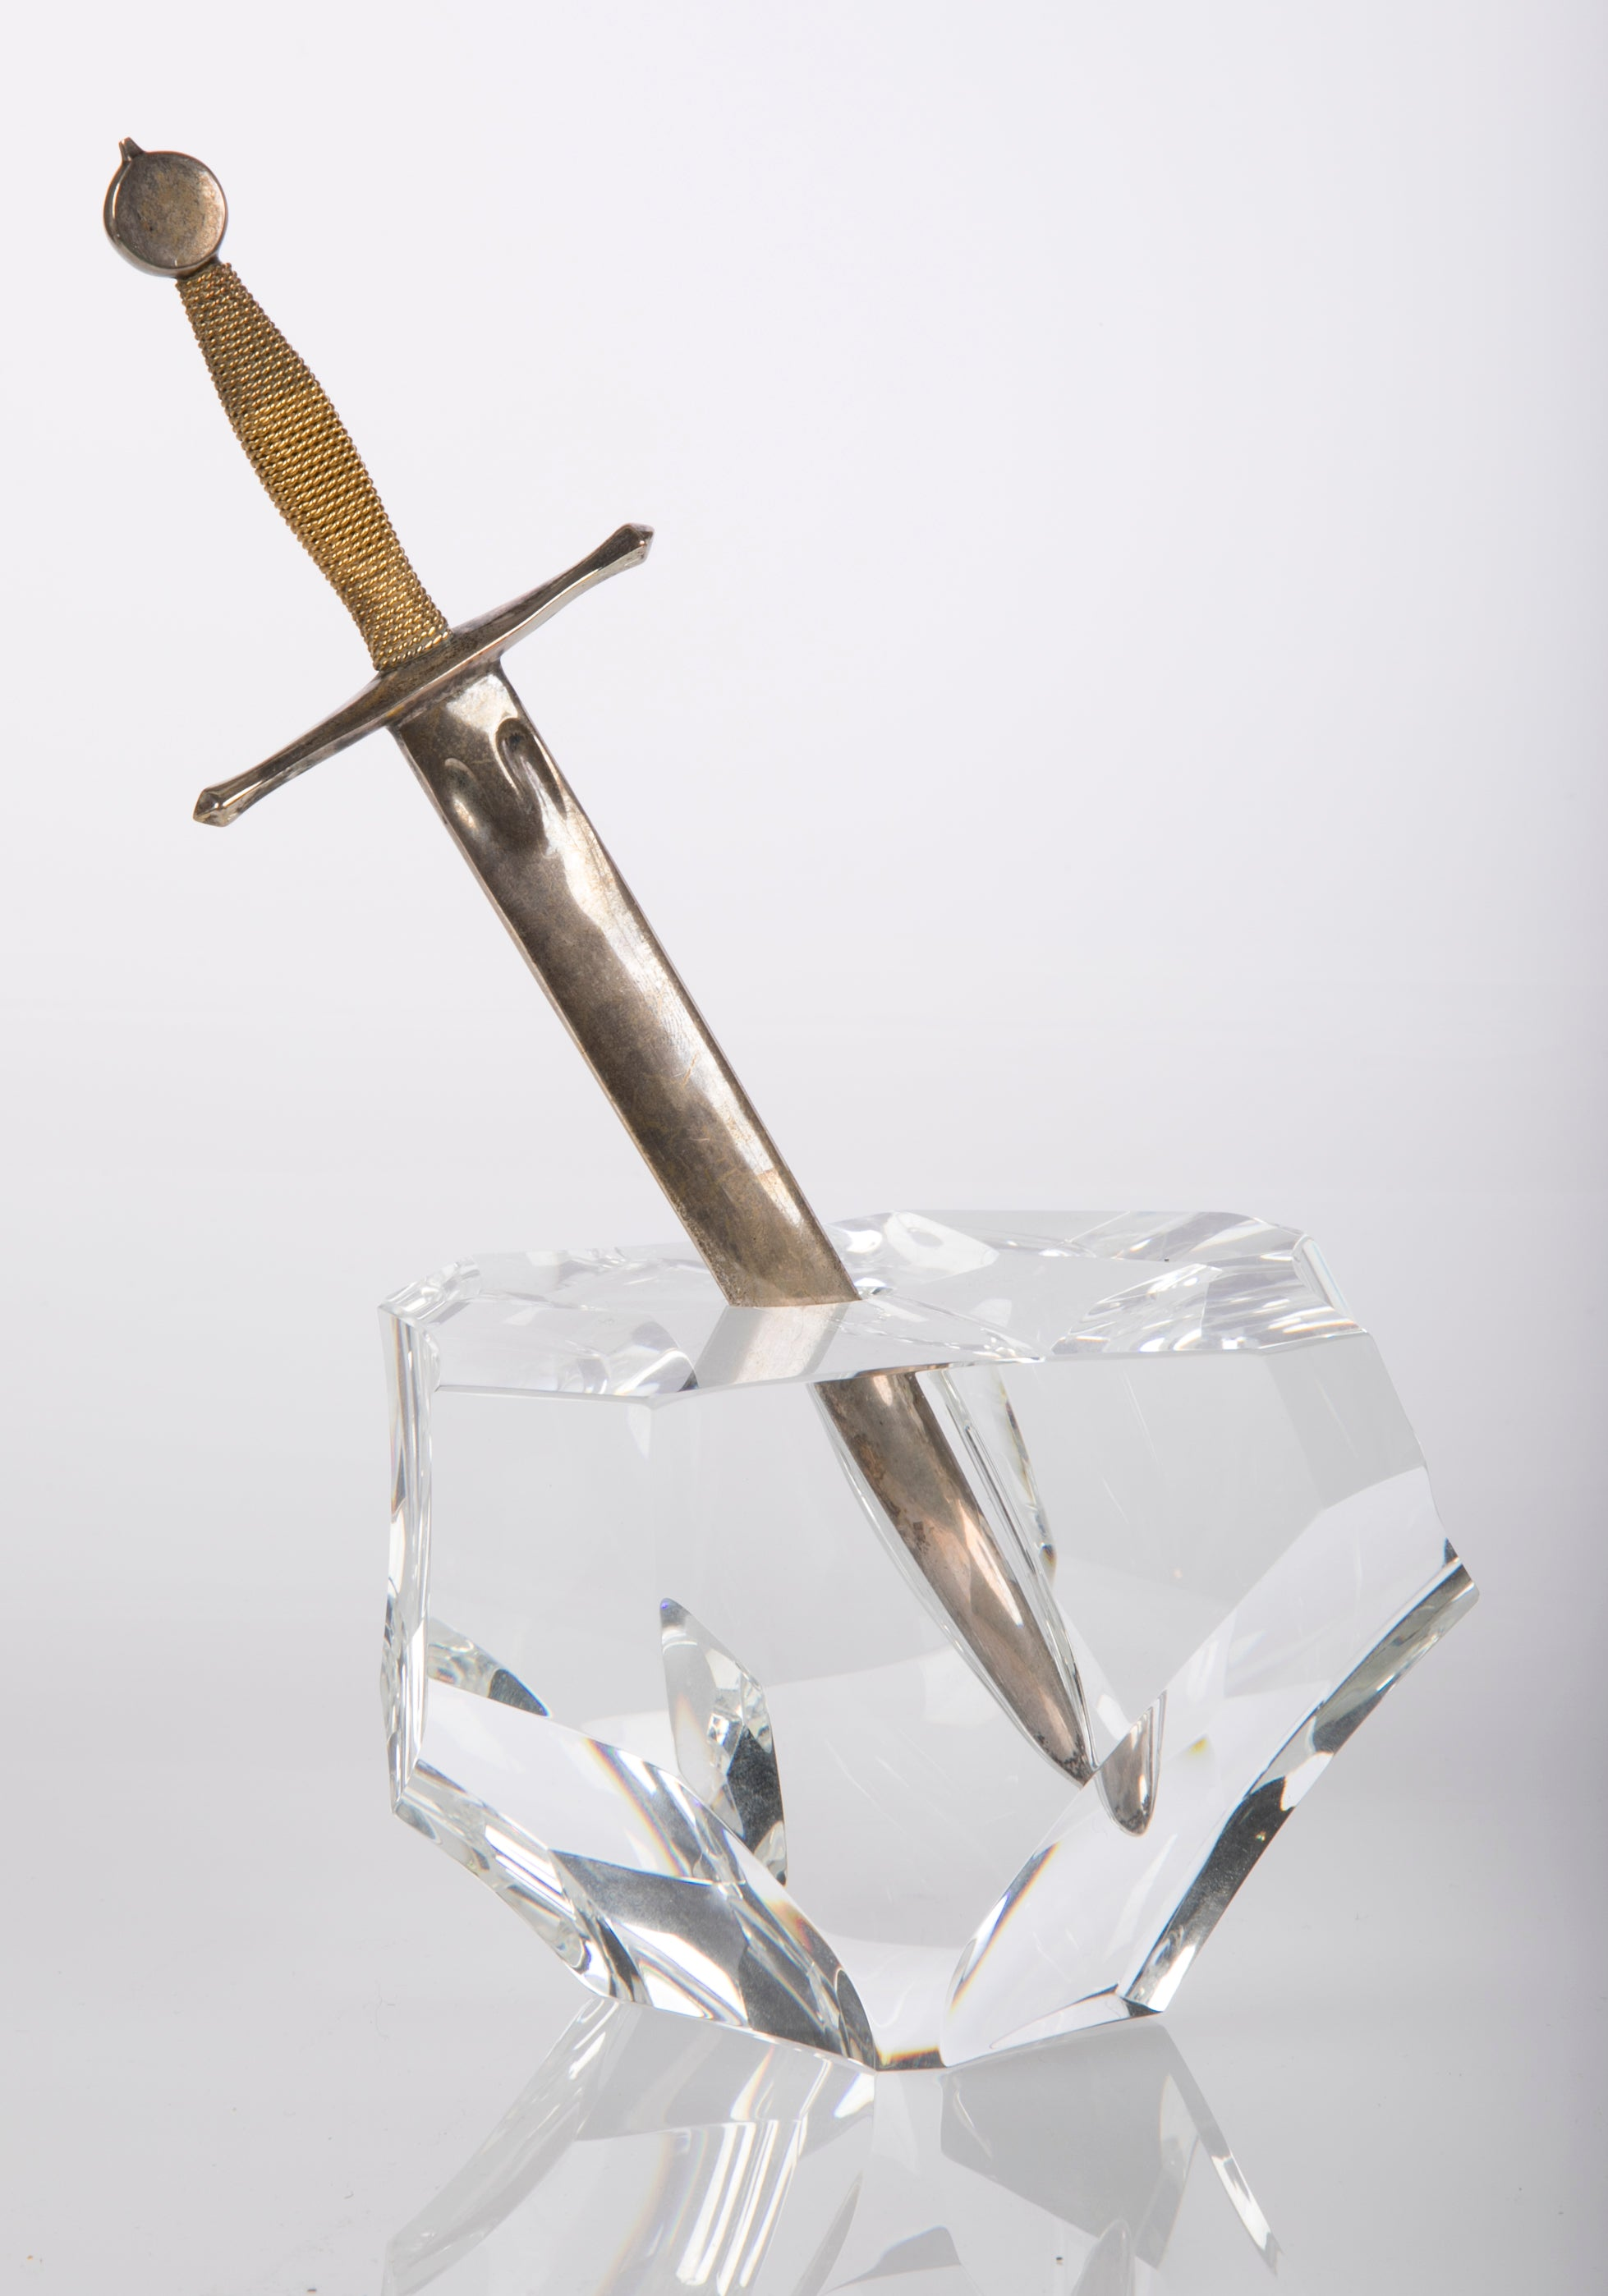 Steuben Paperweight and Letter Knife